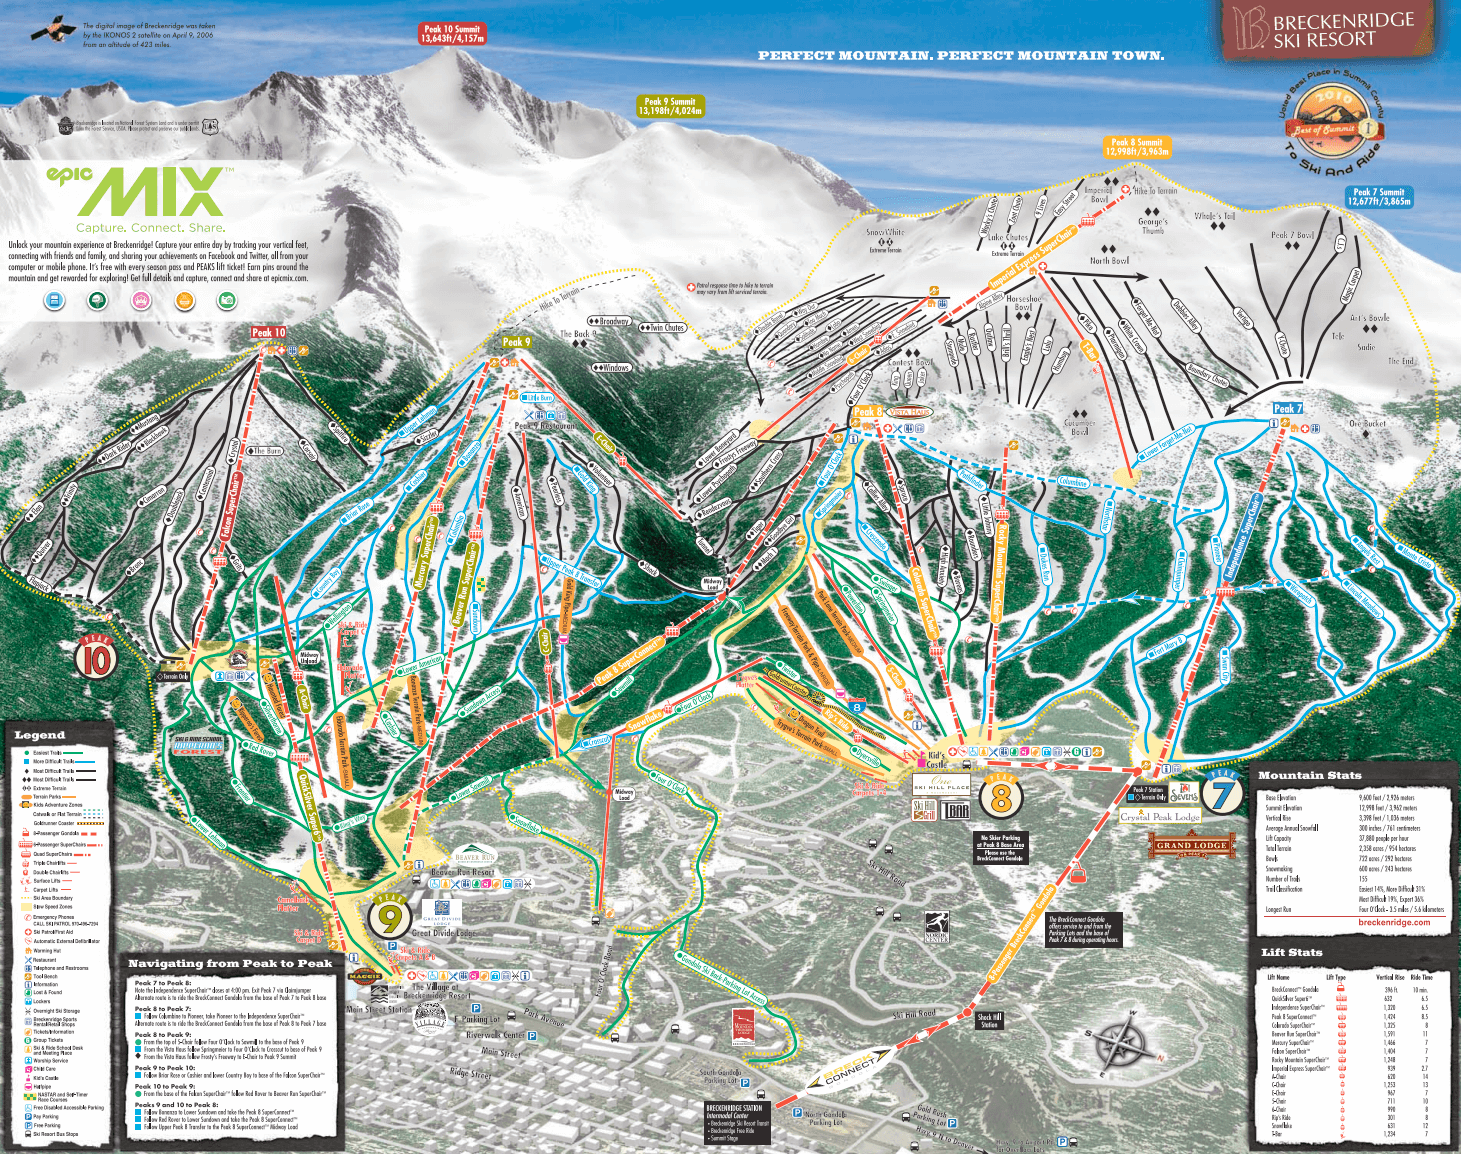 Breckenridge map